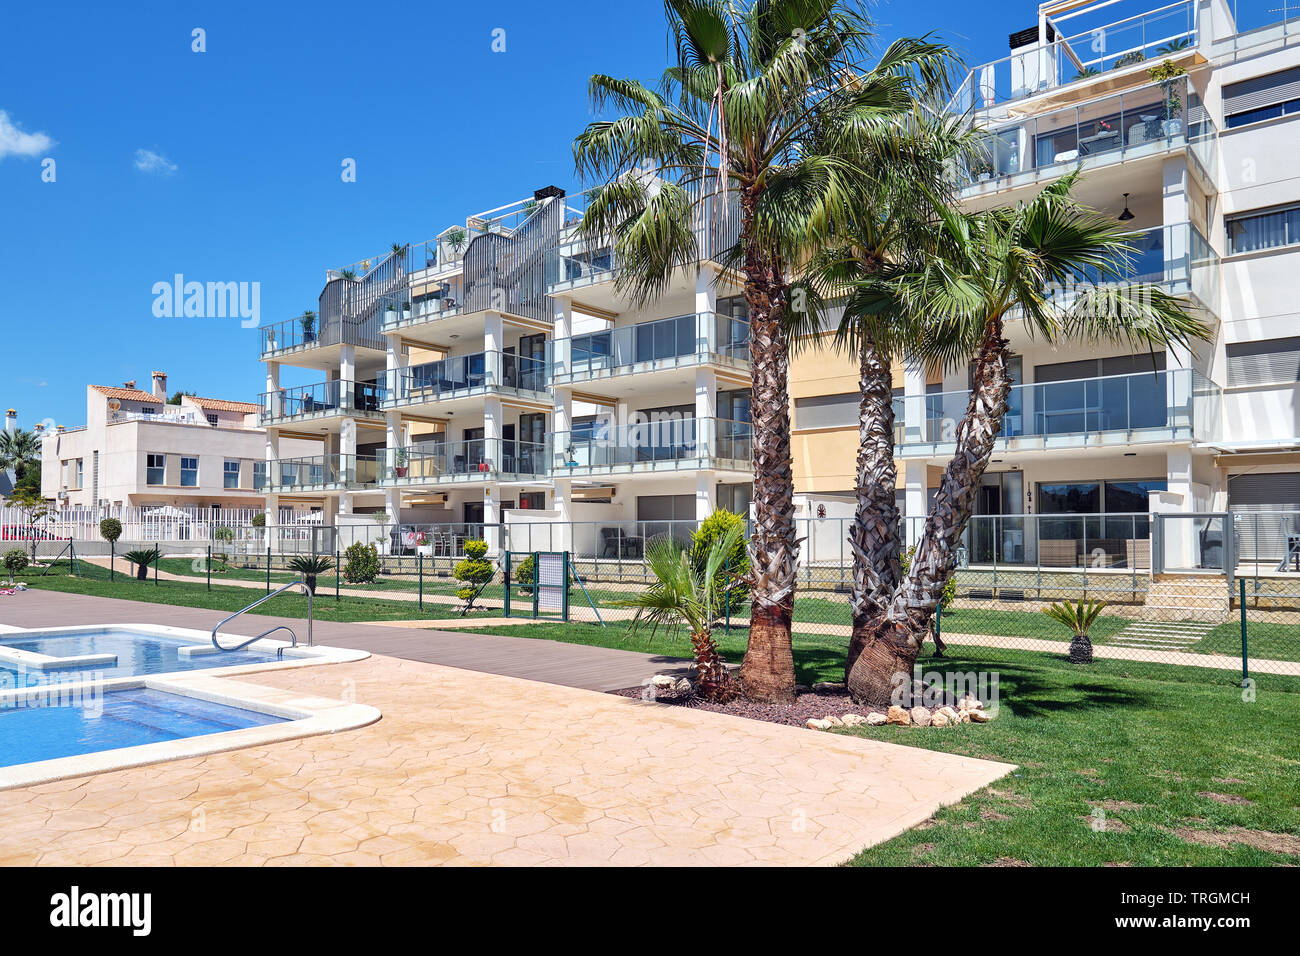 Torrevieja, Spain - April 24, 2019: High rise residential multi-storey house, closed urbanization with swimming pool area for sunbathing, no people - Stock Image